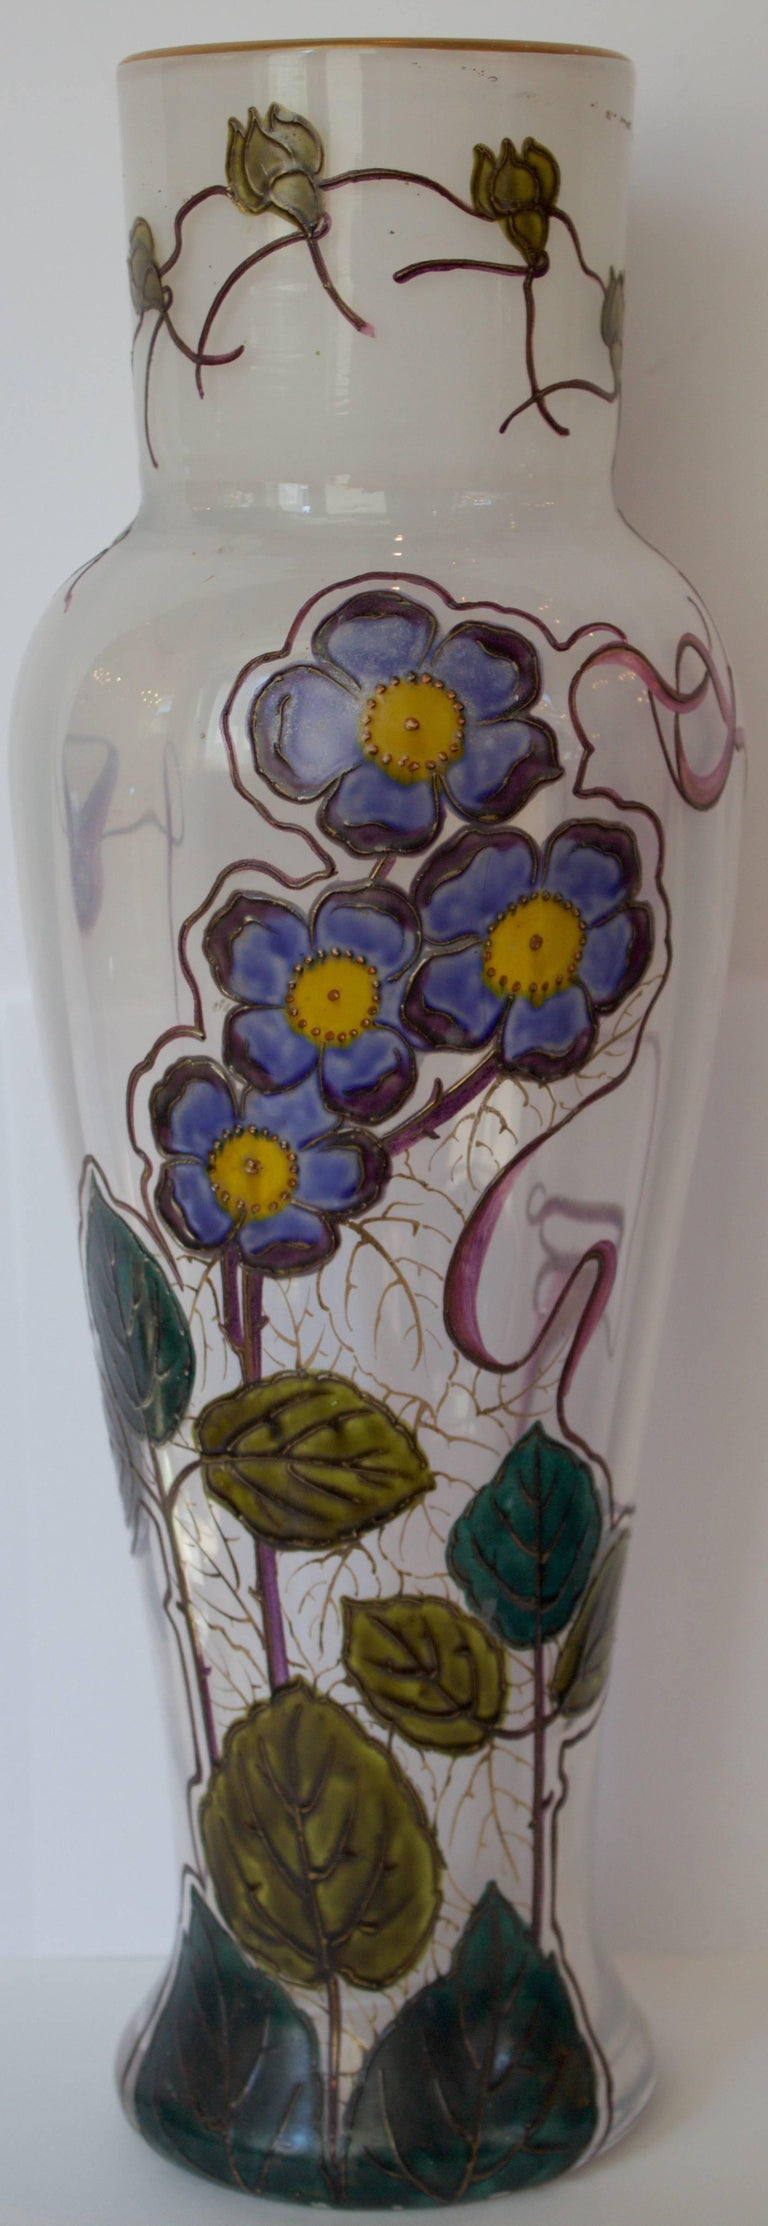 "French 19th Century Glass Vase by Legras Signed "" Montjoye L&Cie"" 2"